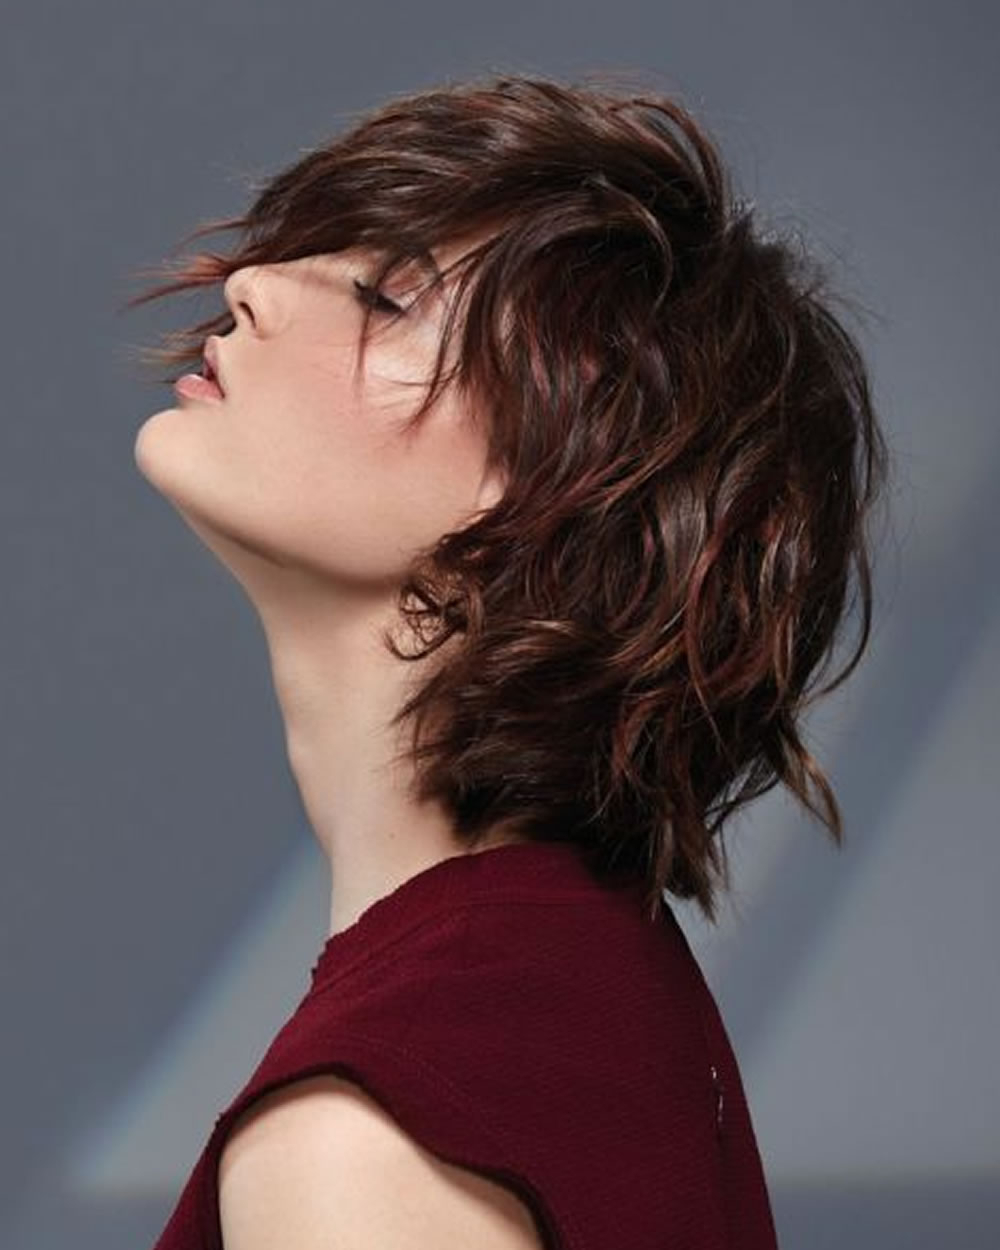 Hair Cuts : Bob Haircuts For Round Faces And Fine Hair Thick Female Pertaining To Short Hair For Round Face Women (View 17 of 25)